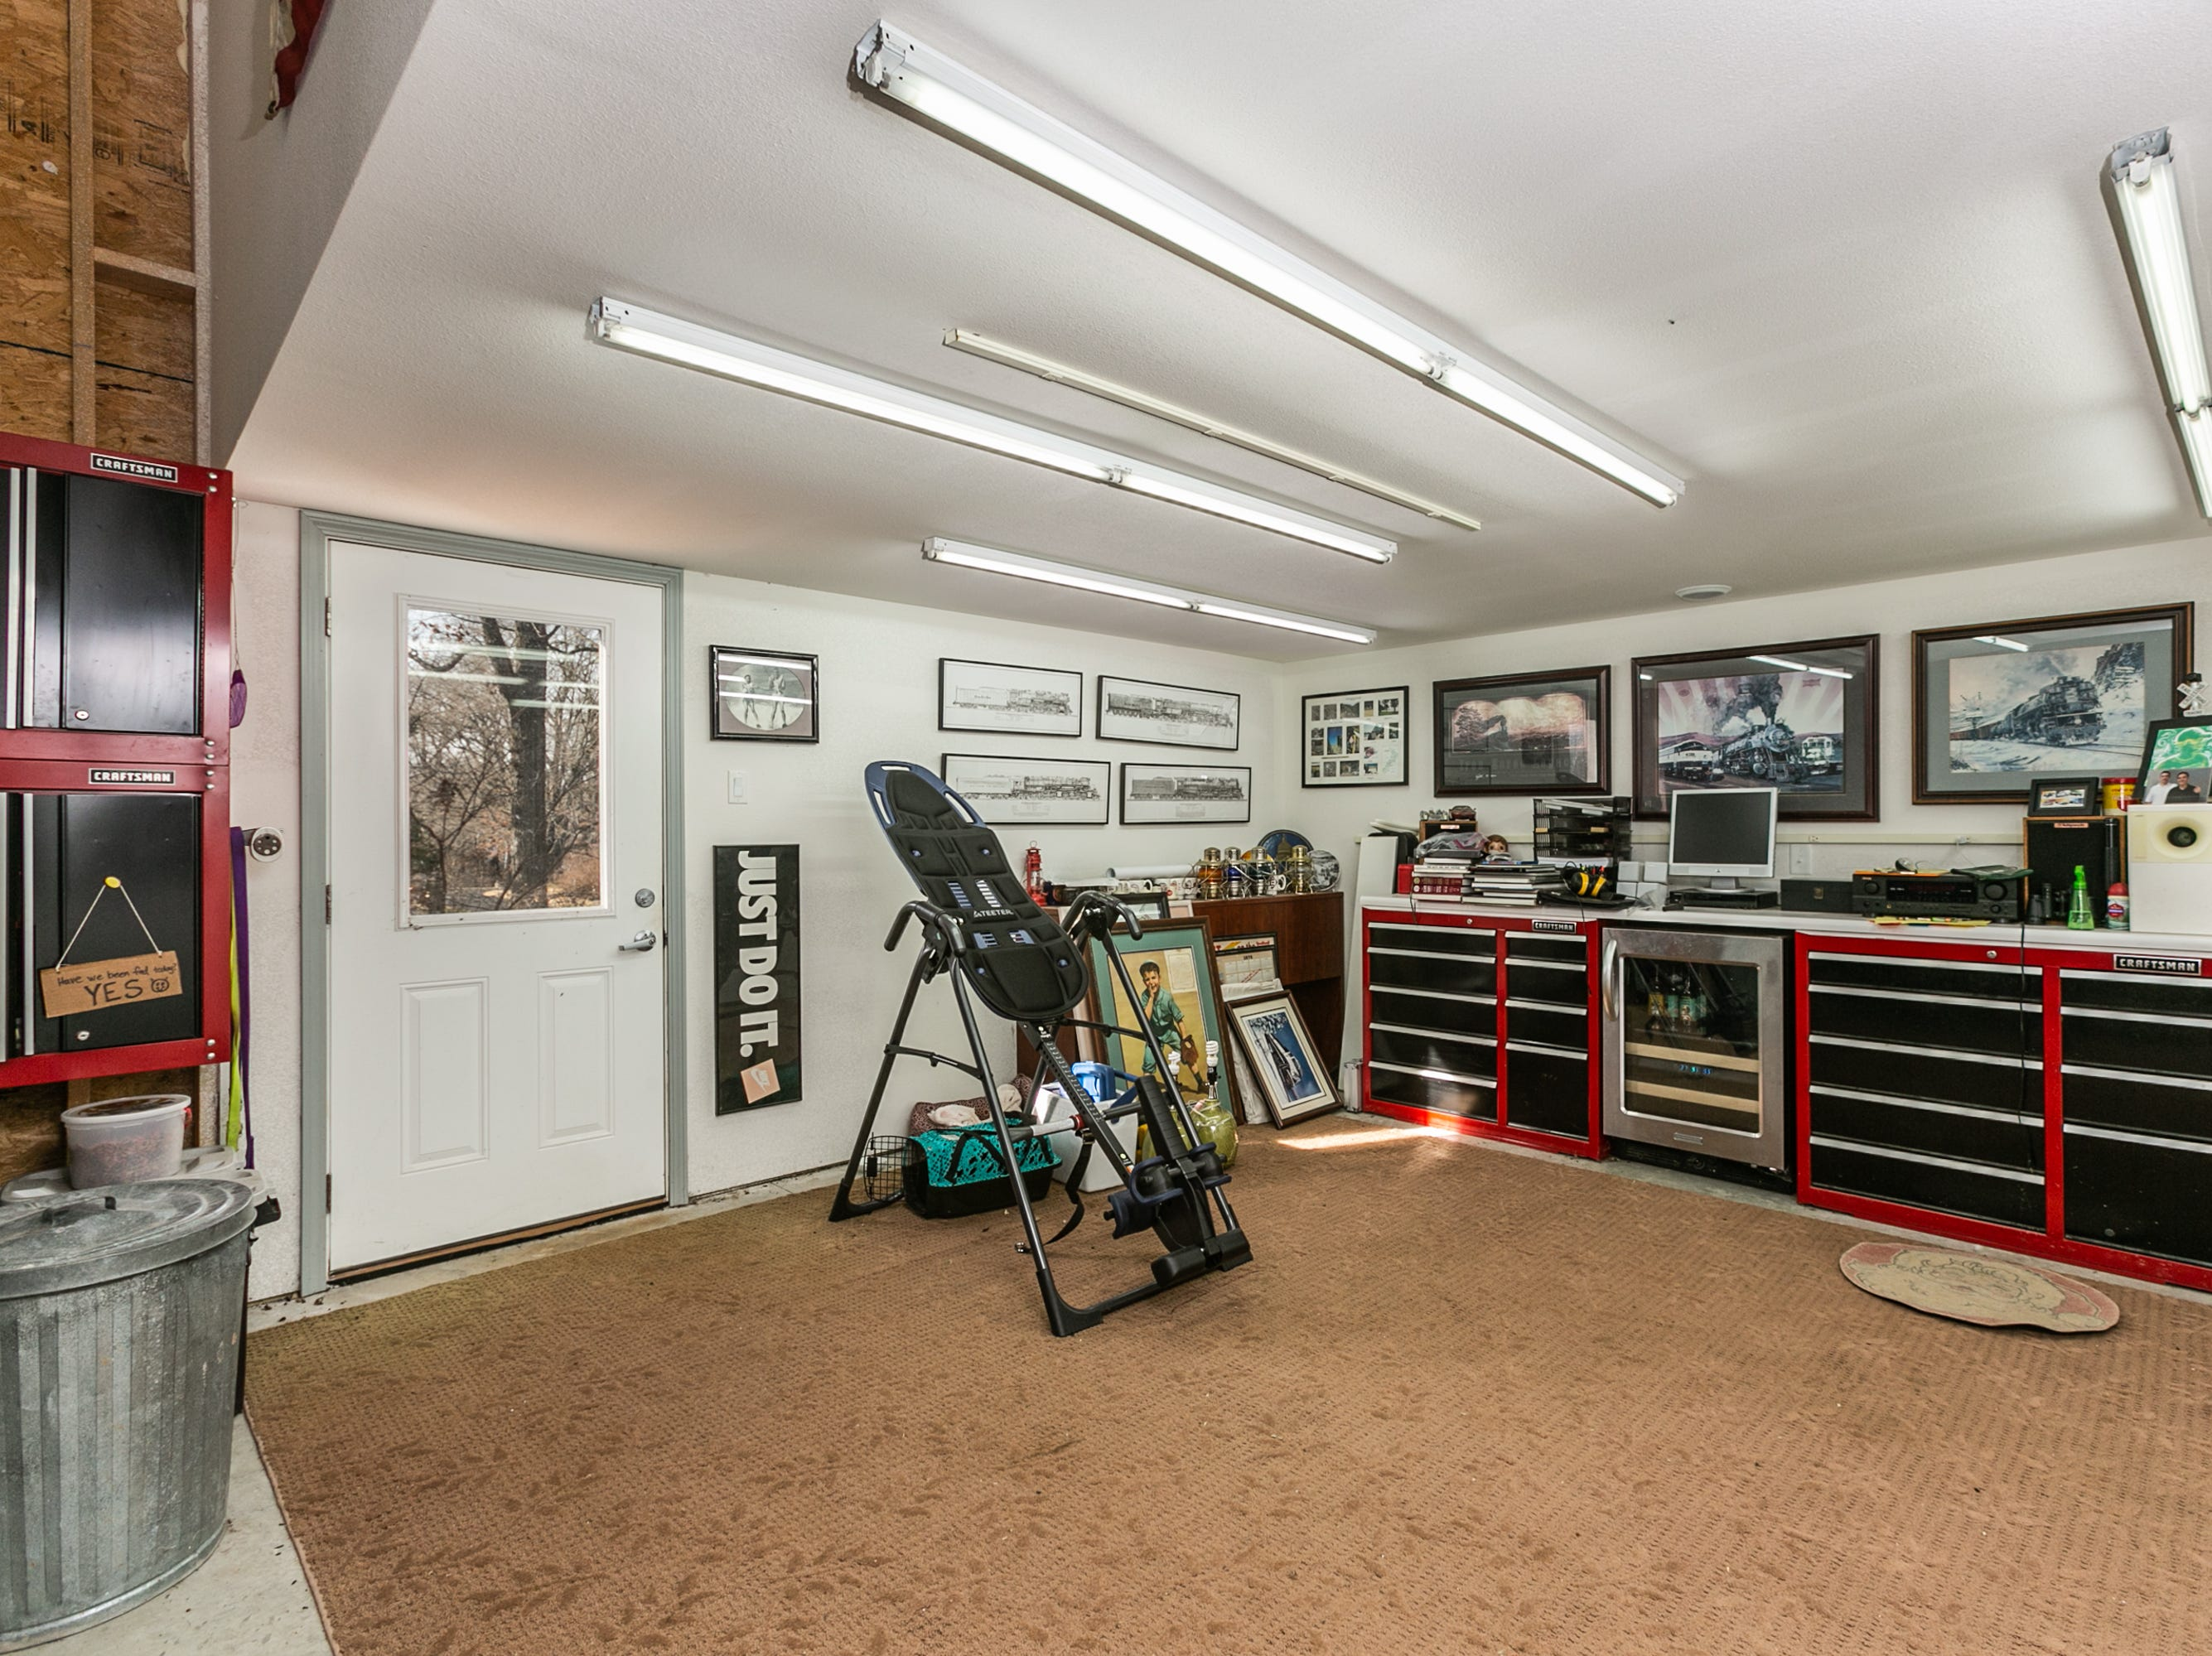 This hobby area/workout space occupies a corner of the larger second garage. It too could easily be converted for a number of alternate uses.